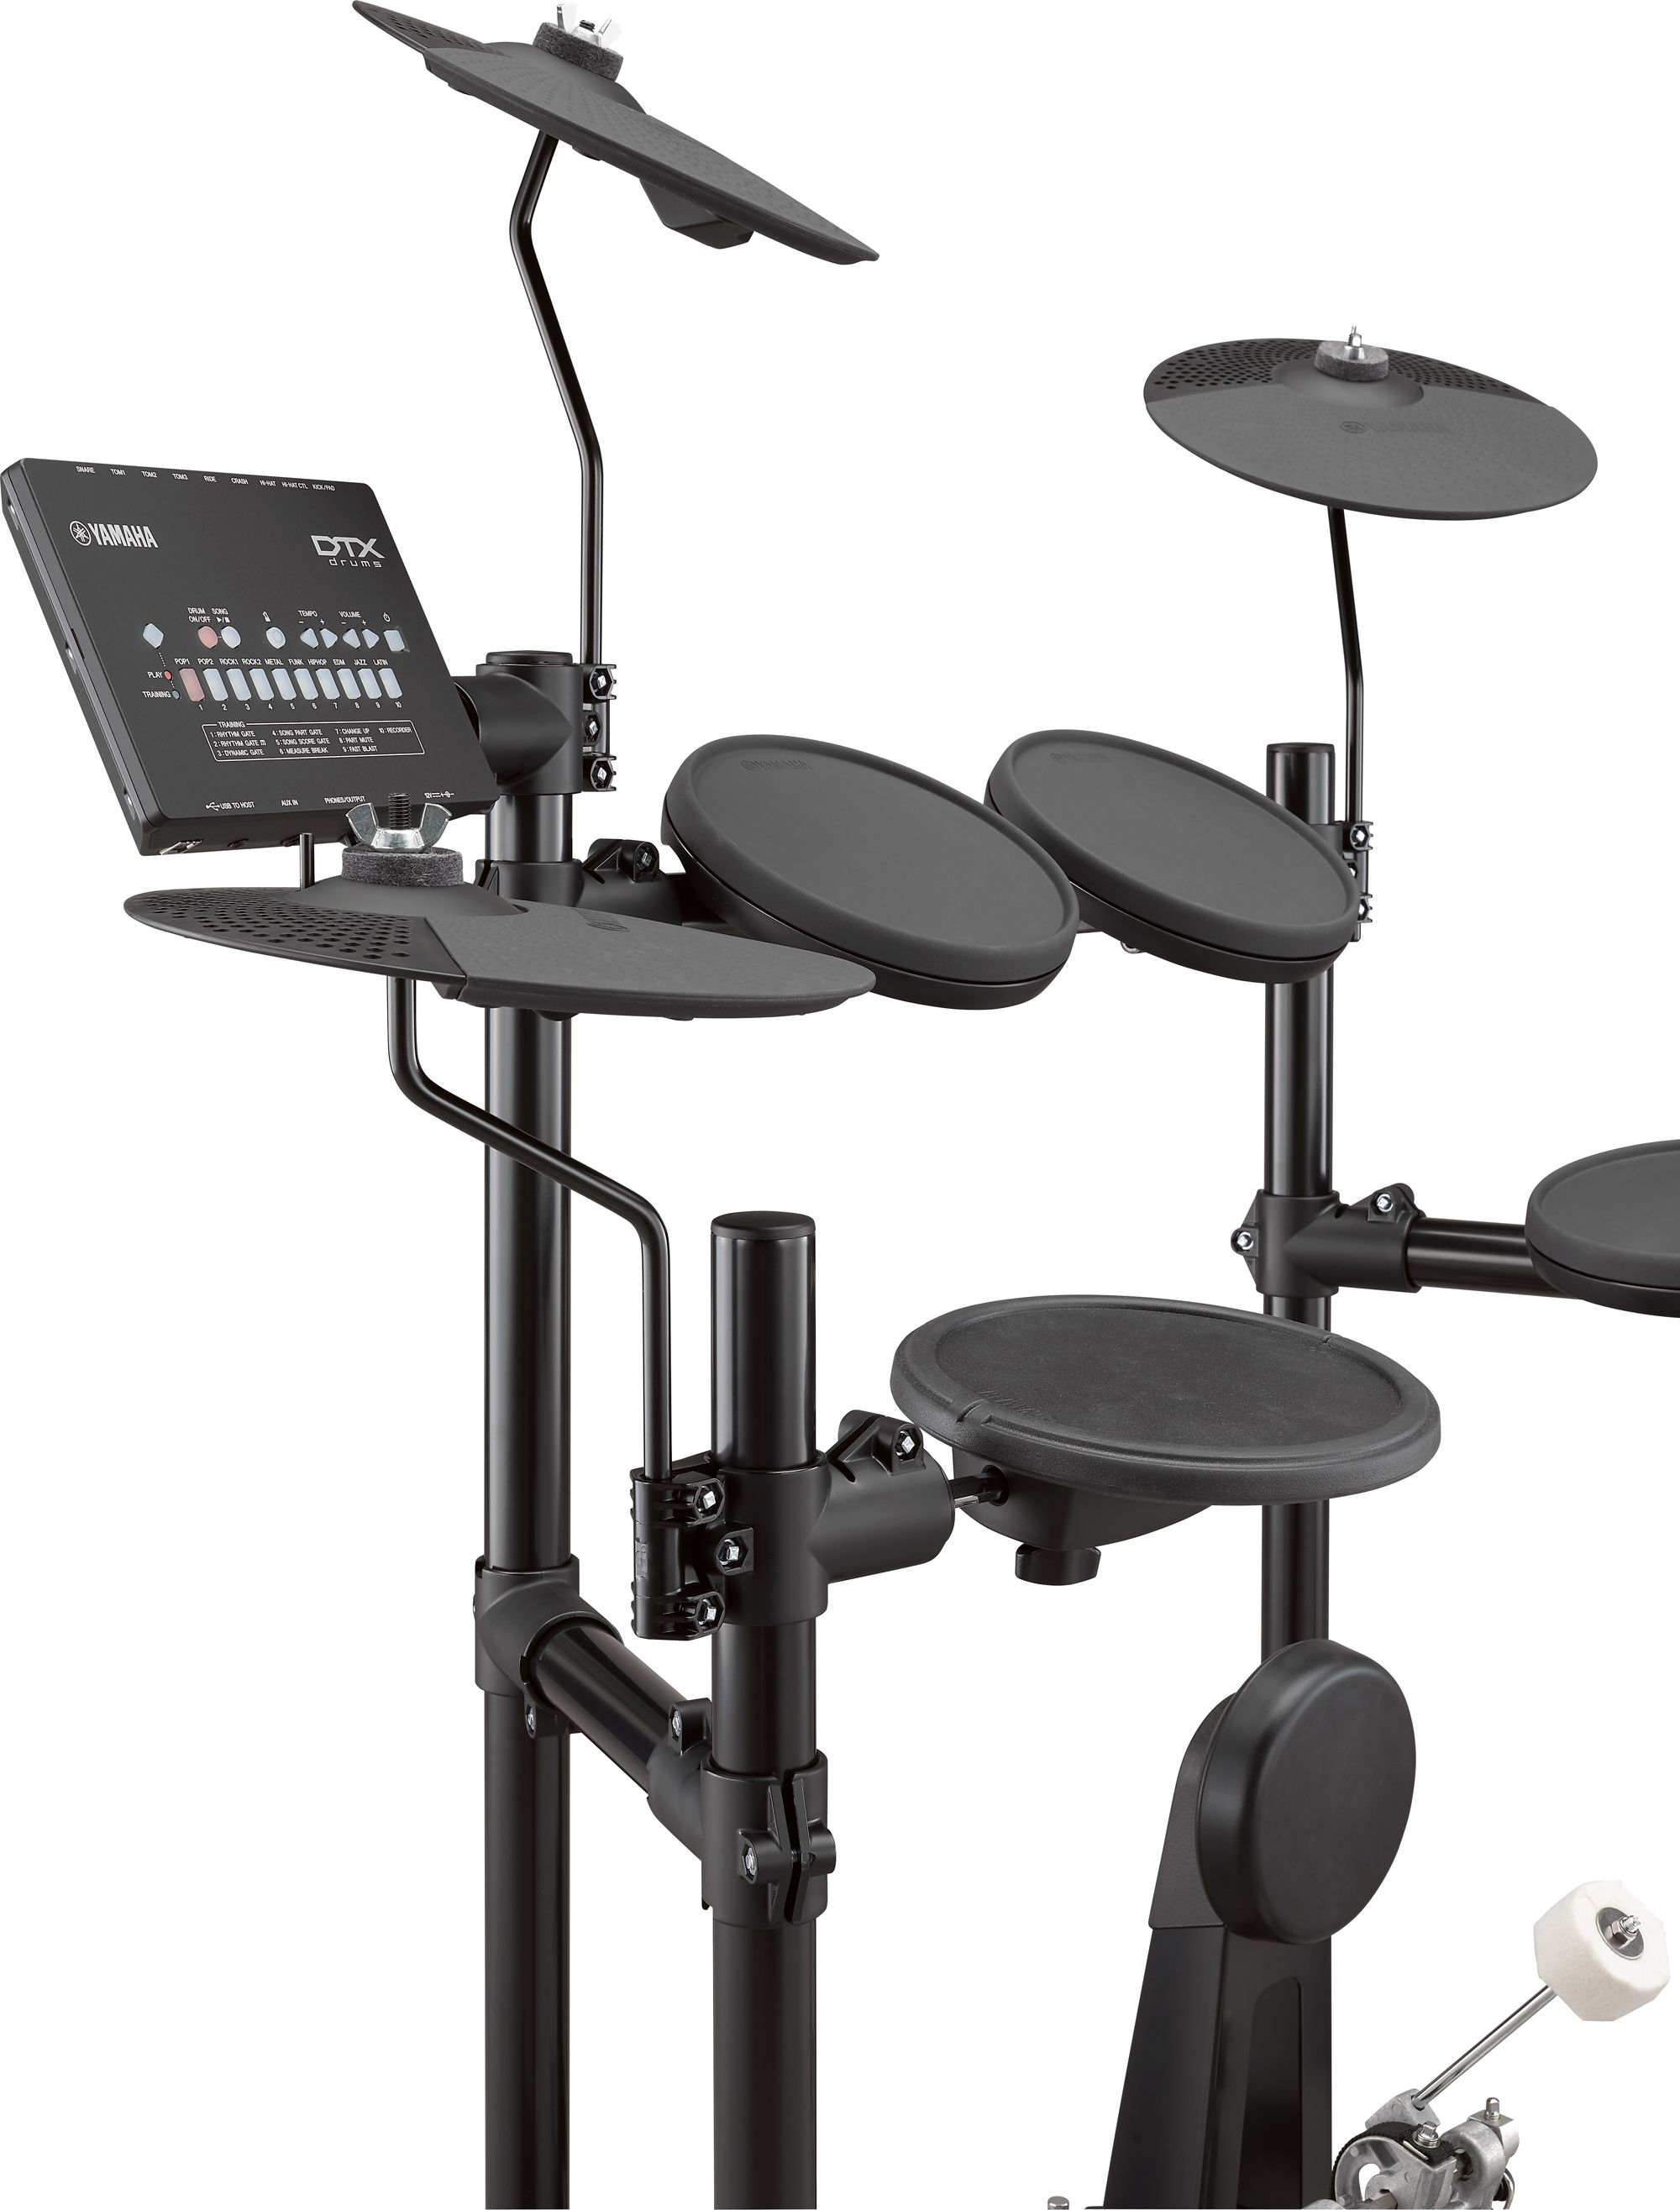 Yamaha DTX402 Series electronic drum sets feature stereo-sampled